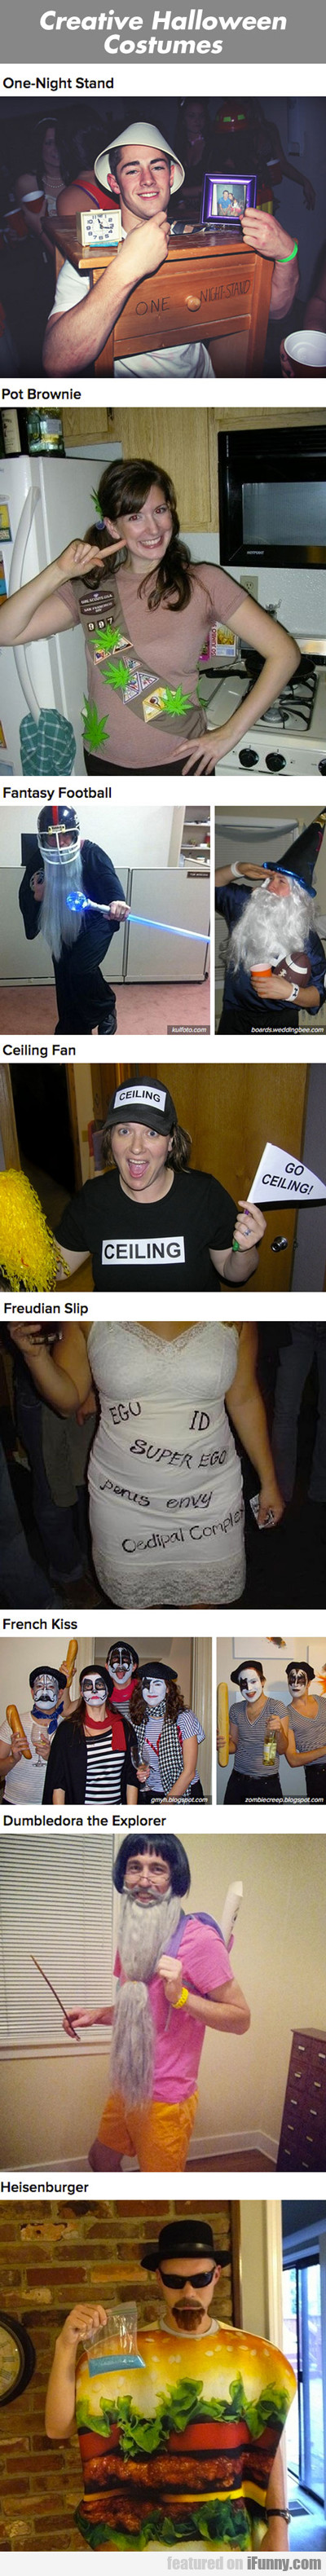 Creative Halloween Costumes...